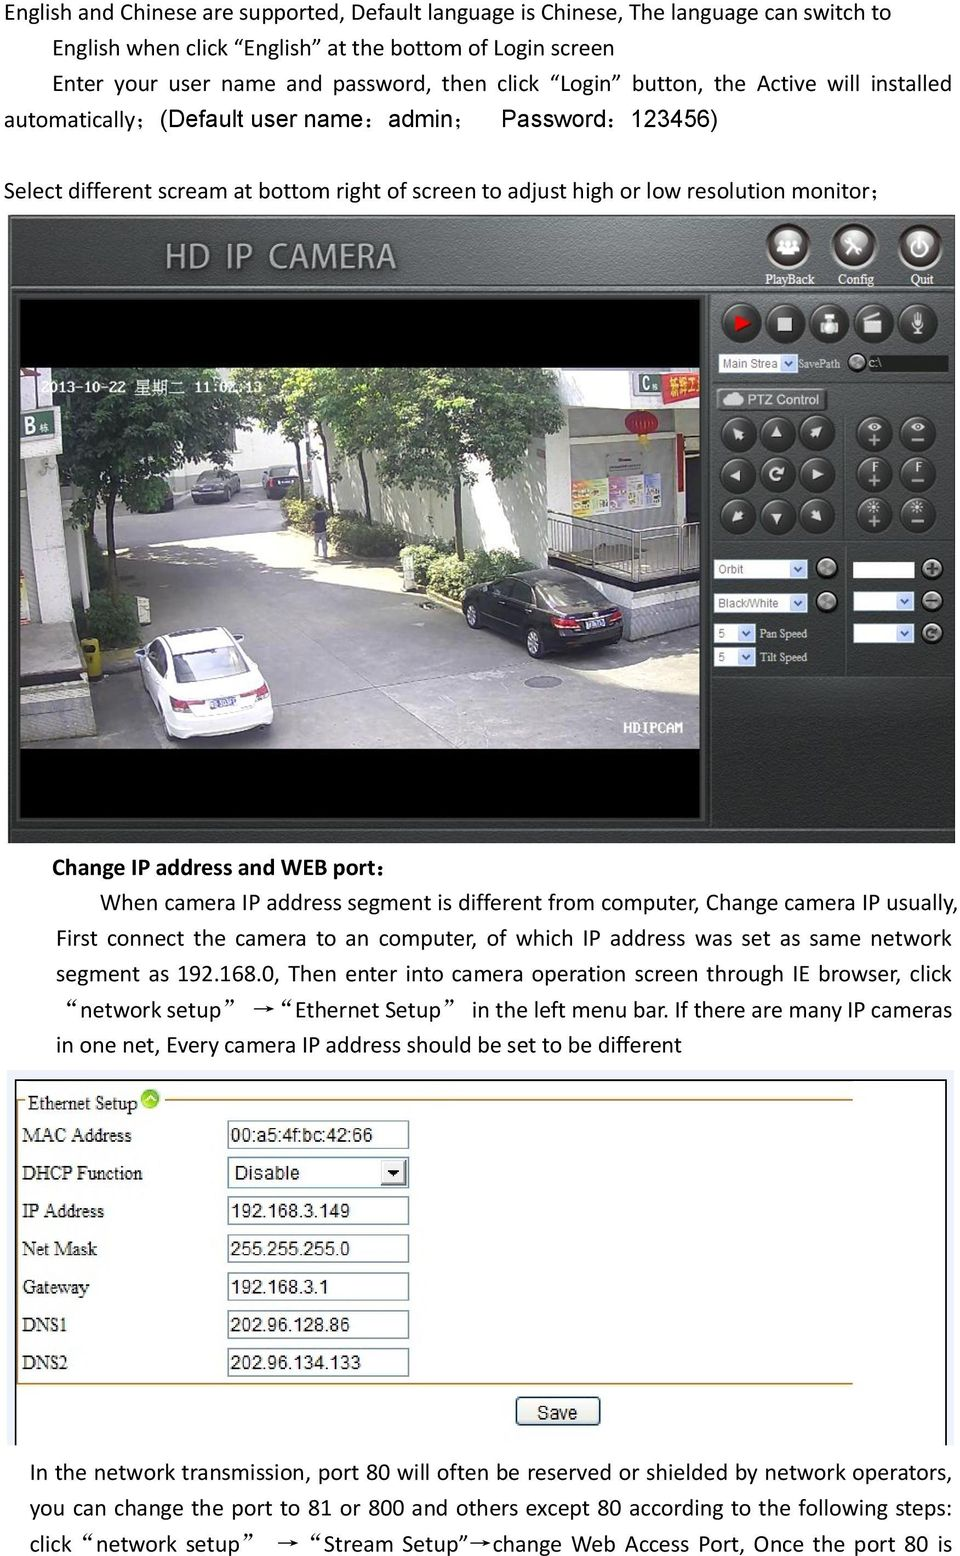 address and WEB port: When camera IP address segment is different from computer, Change camera IP usually, First connect the camera to an computer, of which IP address was set as same network segment